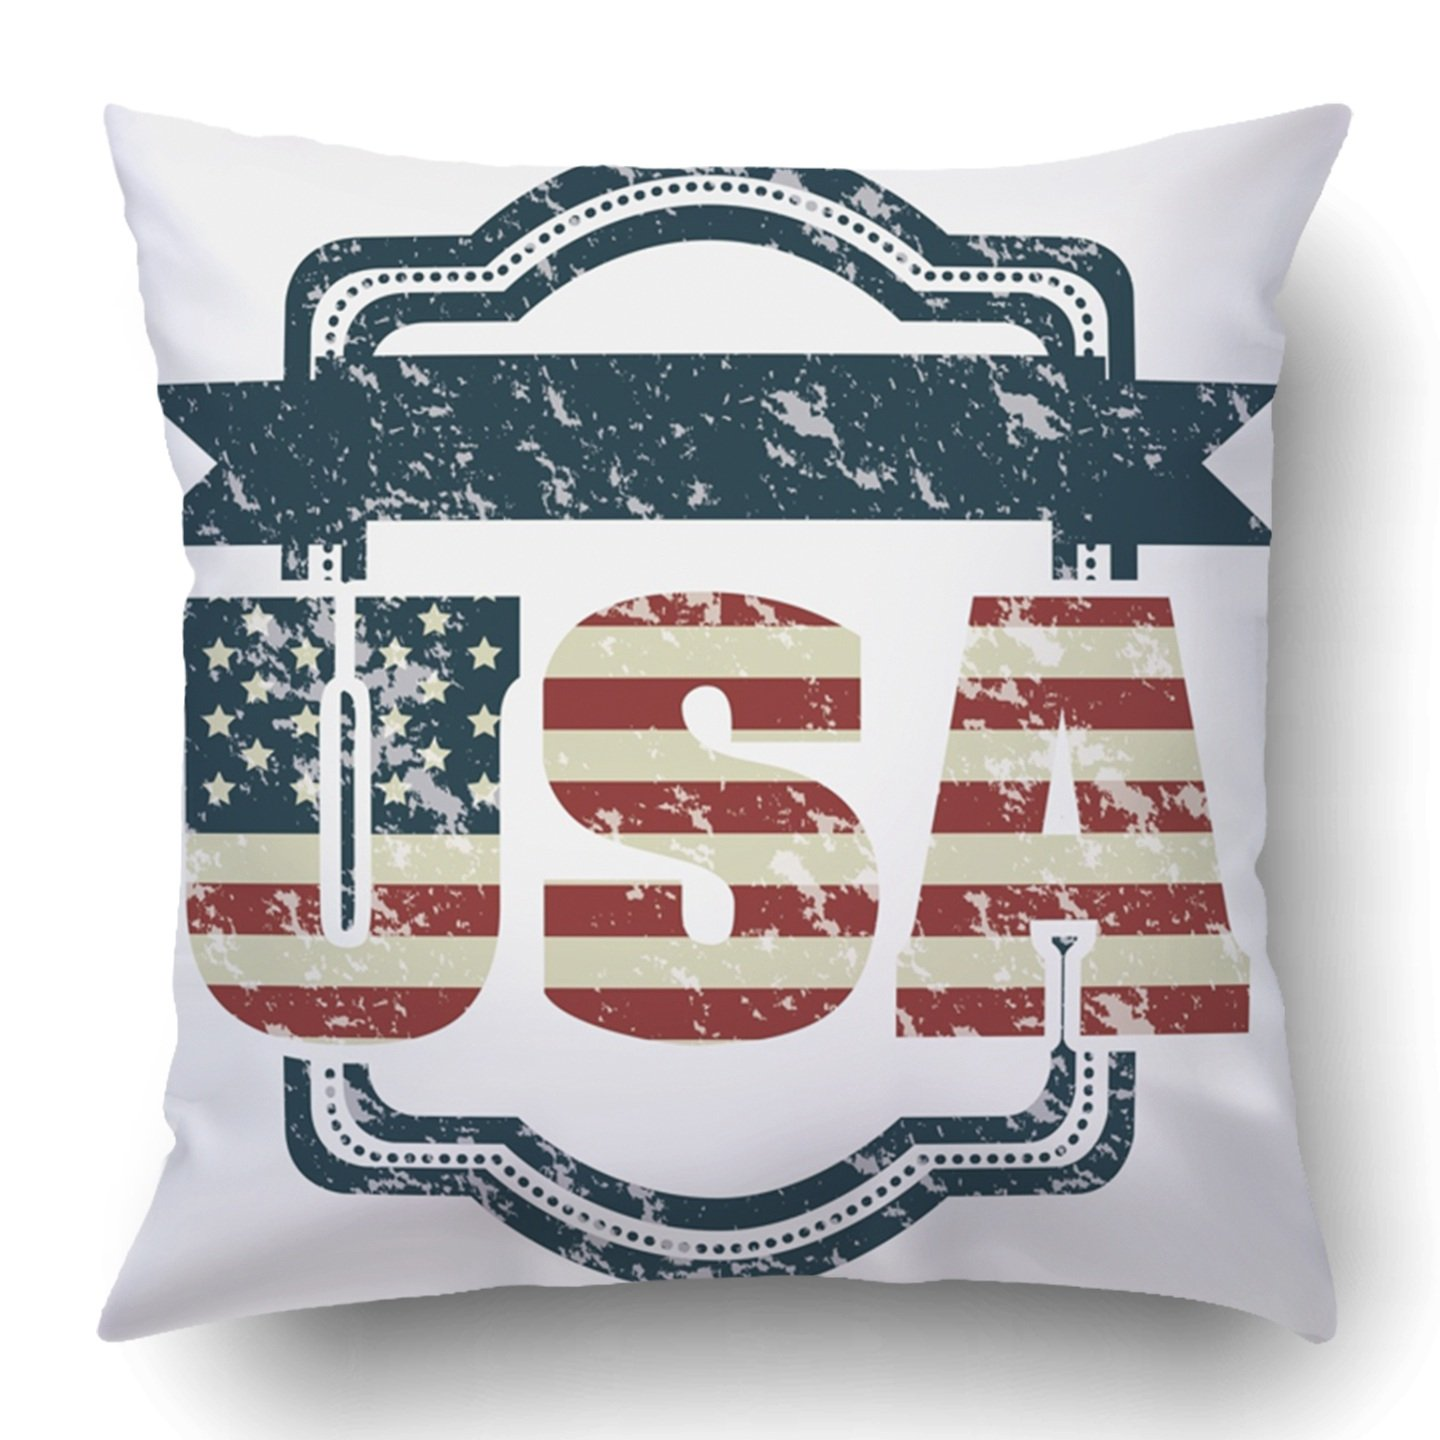 ff1fbe6b362 Emvency Throw Pillow Covers Blue Americana Patriot United States America Usa  Red Flag Rustic American American Flag Antique Polyester 18 X 18 Inch  Square ...